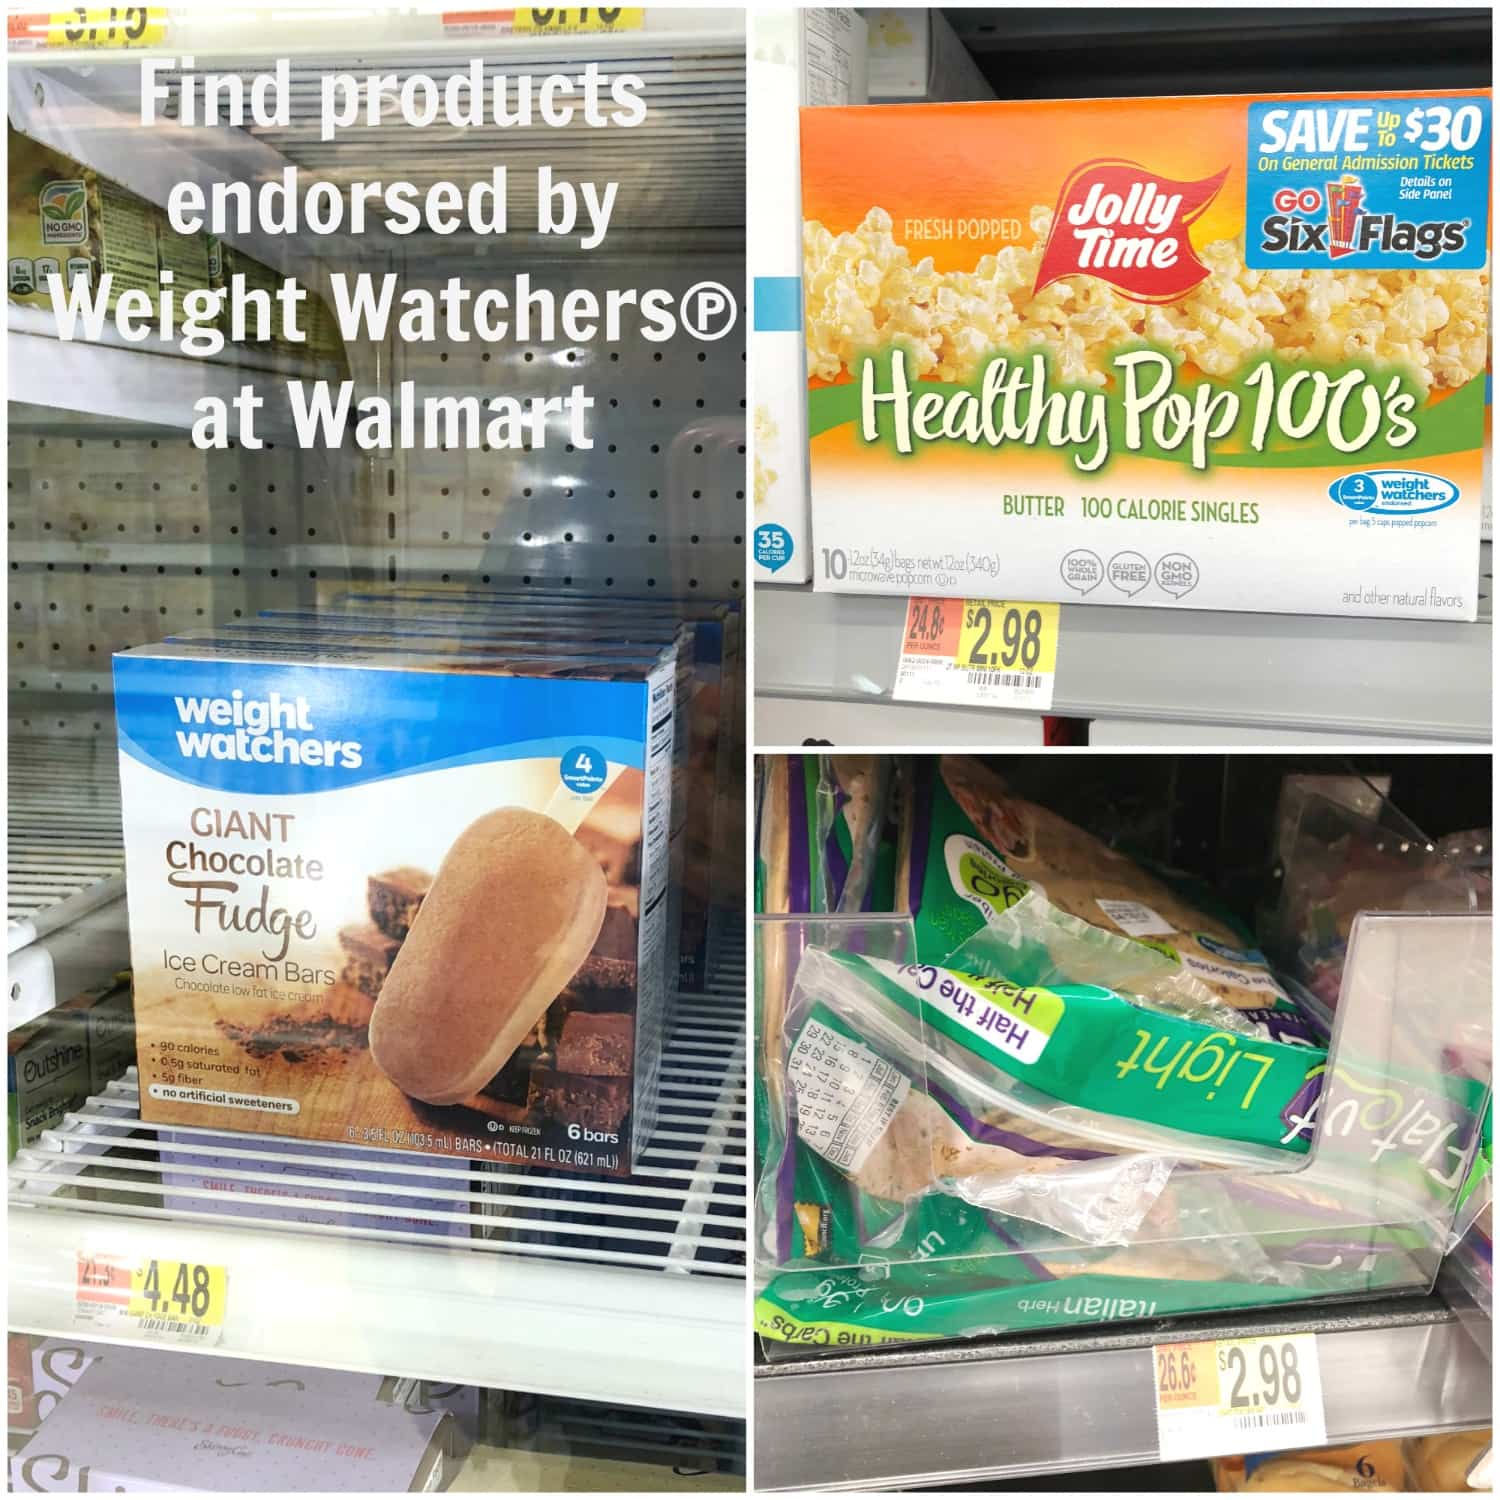 Weight Watchers edorsed products